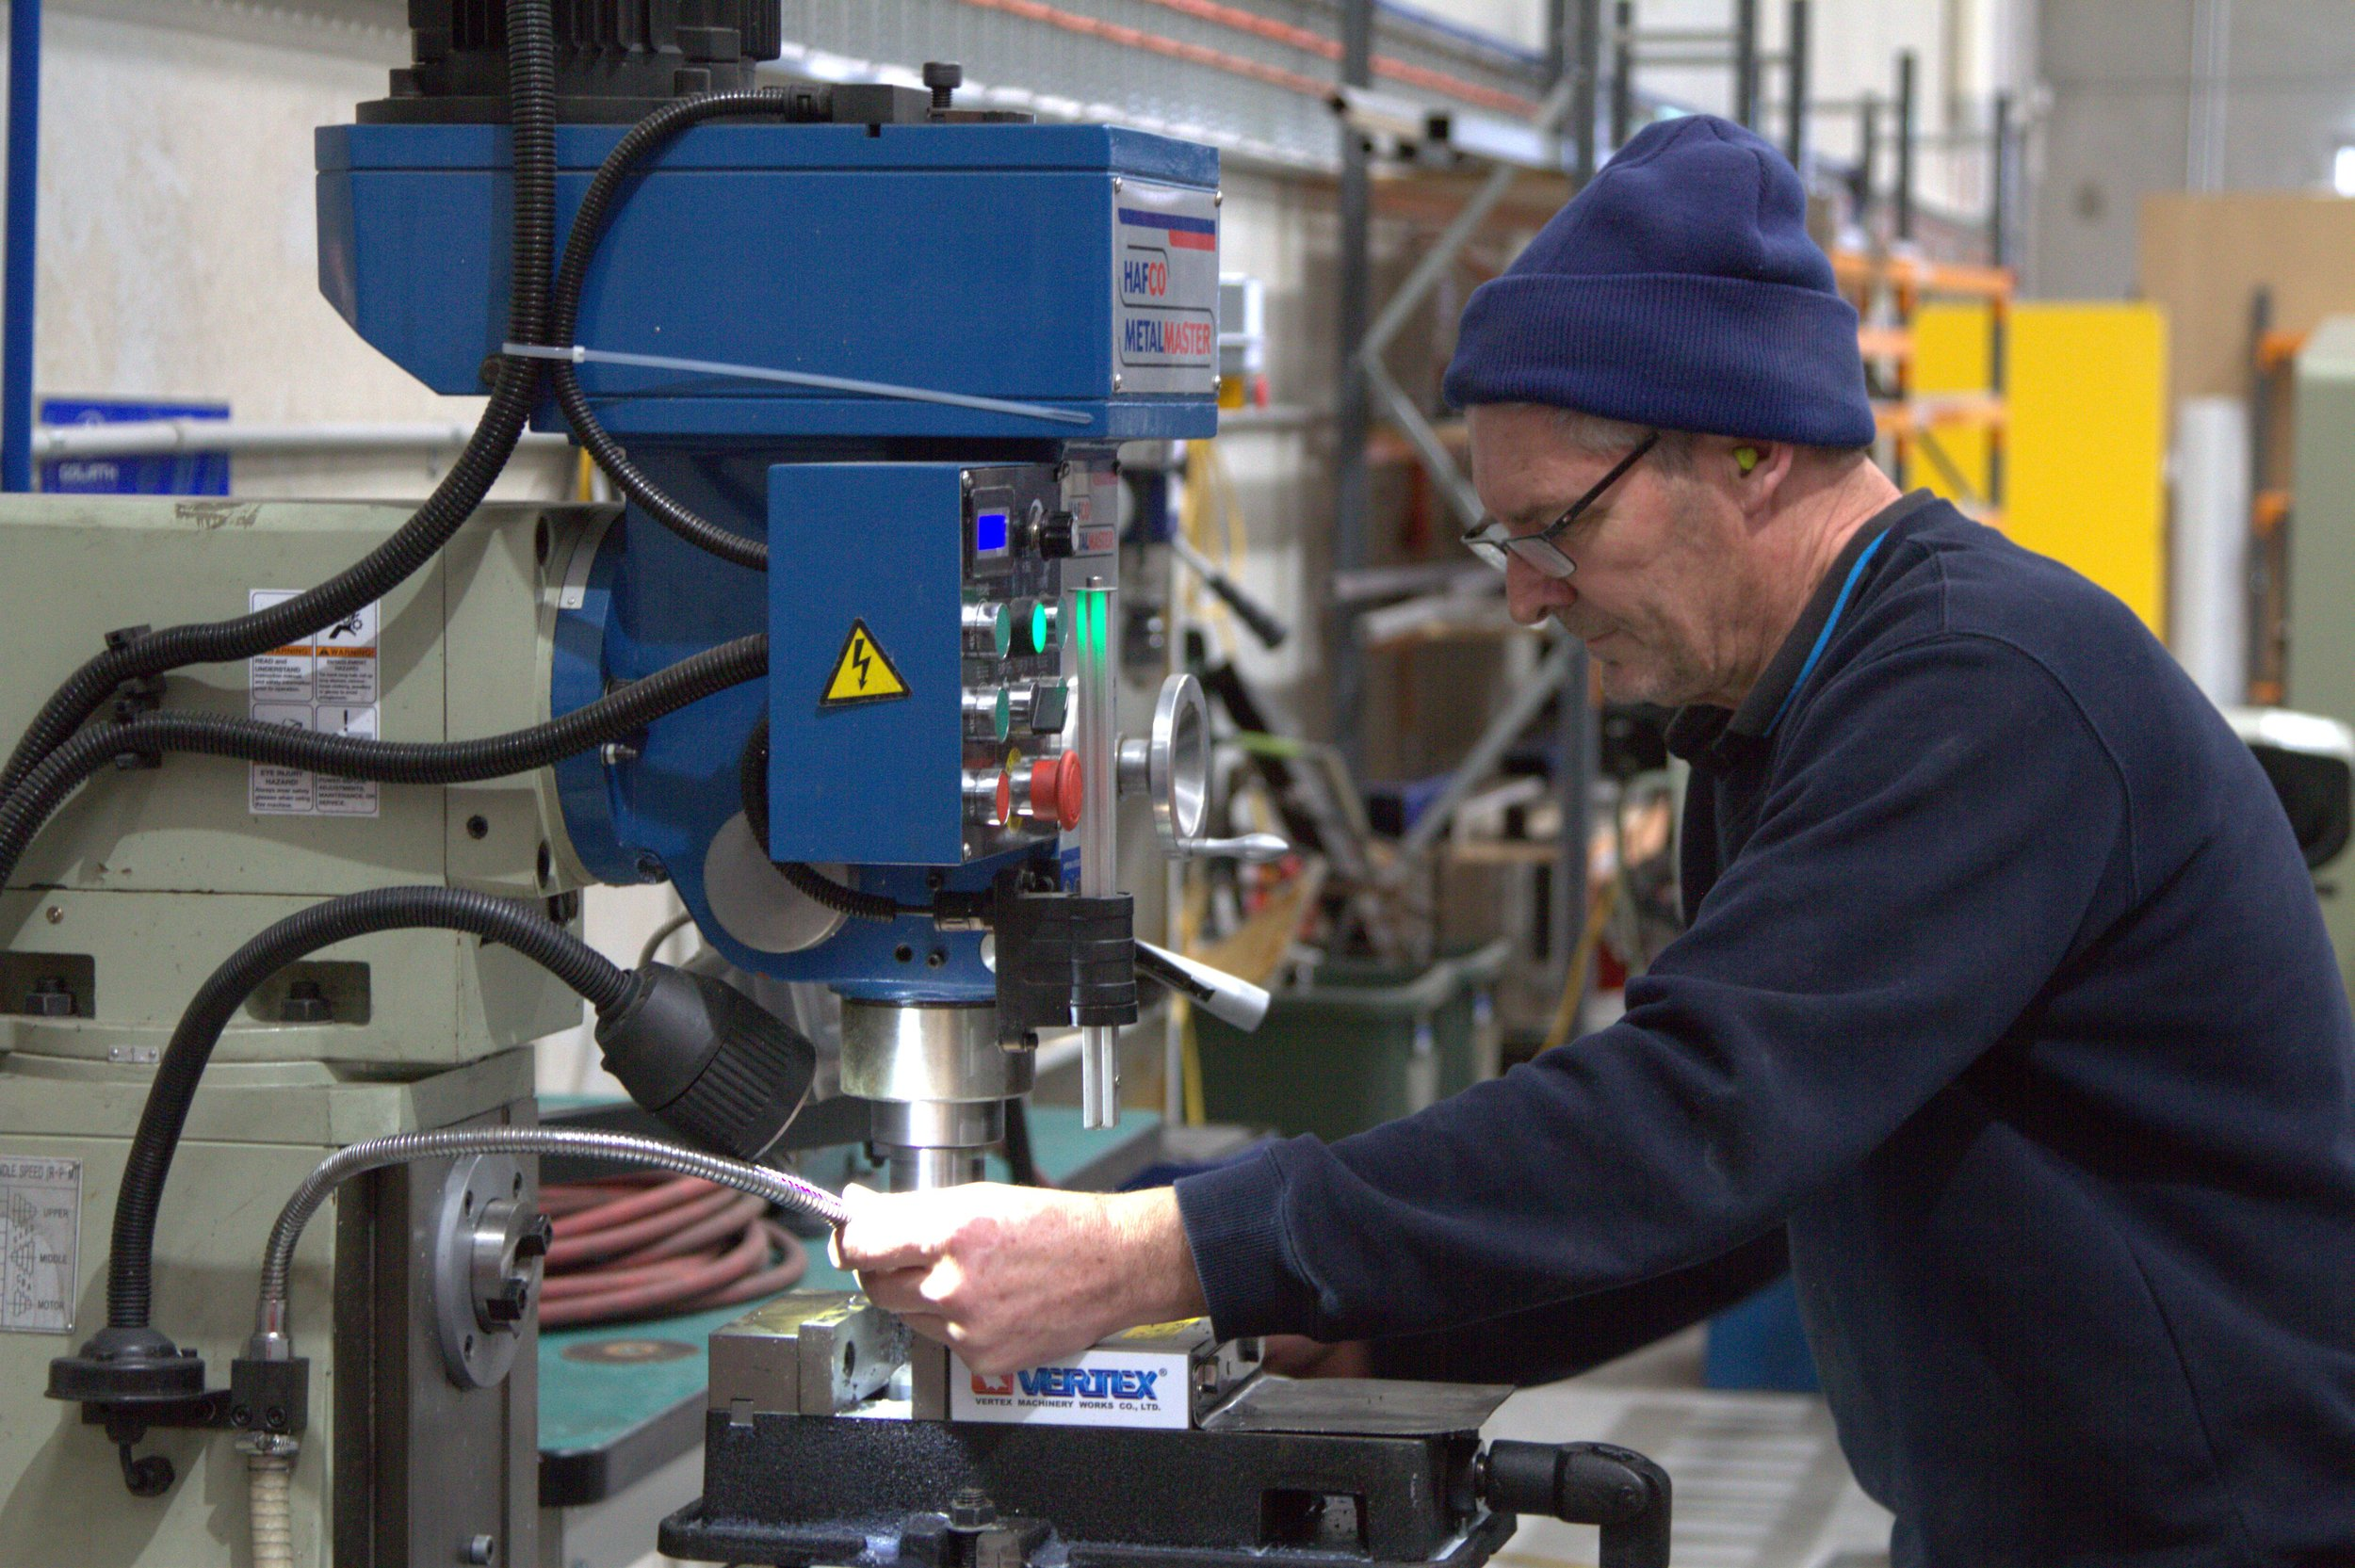 Manufacturing - Five Rings Aerospace maintains an Australian Parts Manufacture Approval (APMA) and our dedicated workshop located in Tullamarine is able to produce anything from folded sheet metal constructions to welded frames and rigging.